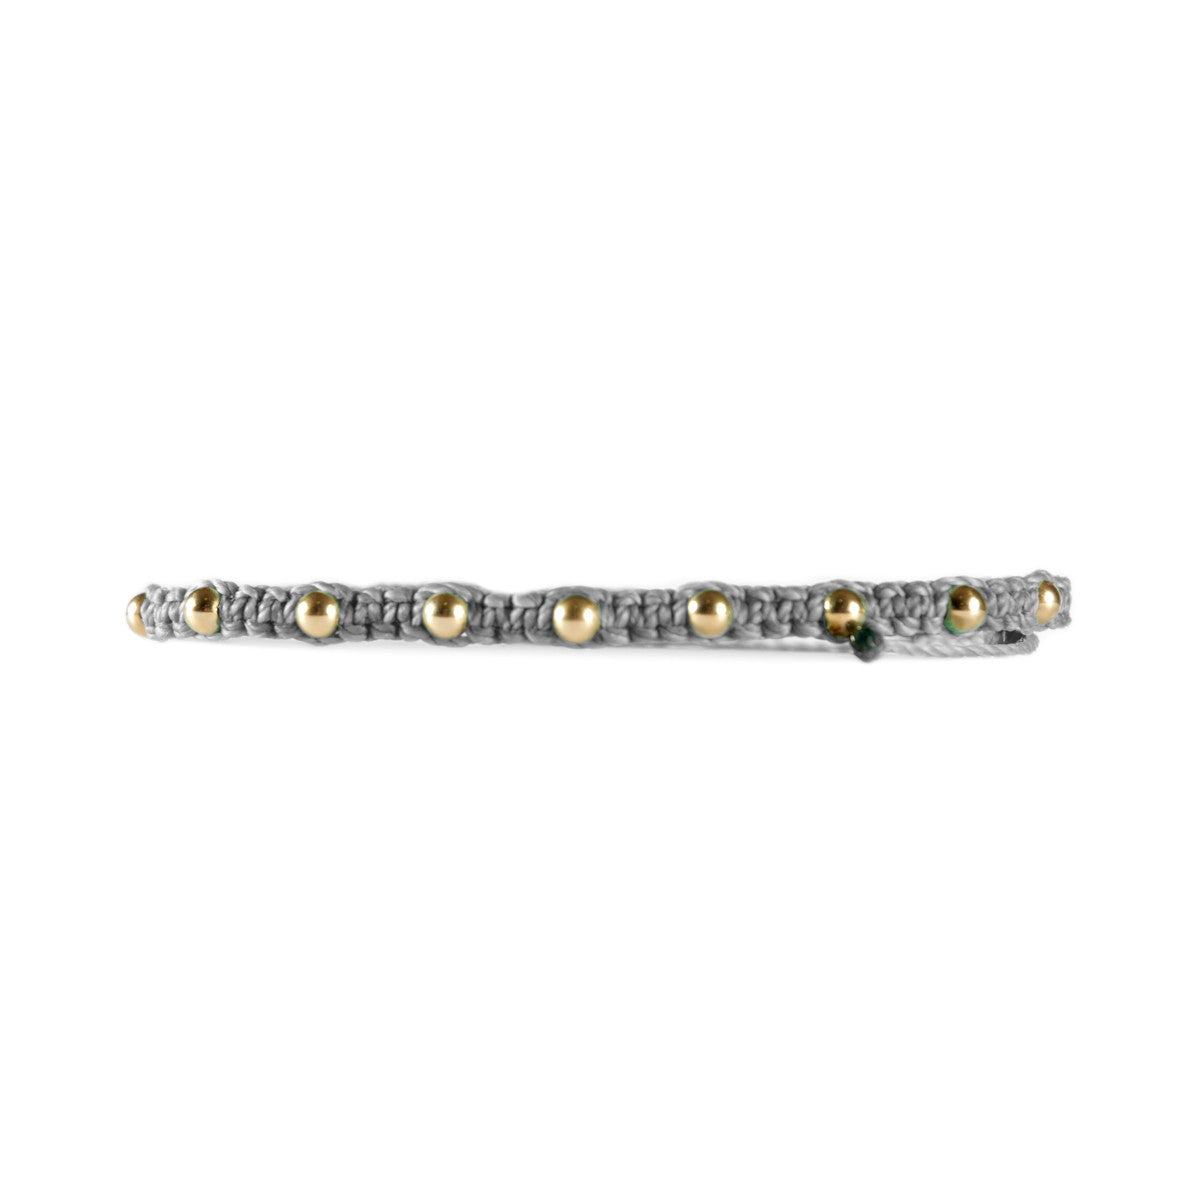 Wholesale Gold Filled Studded Bracelet Dark Grey